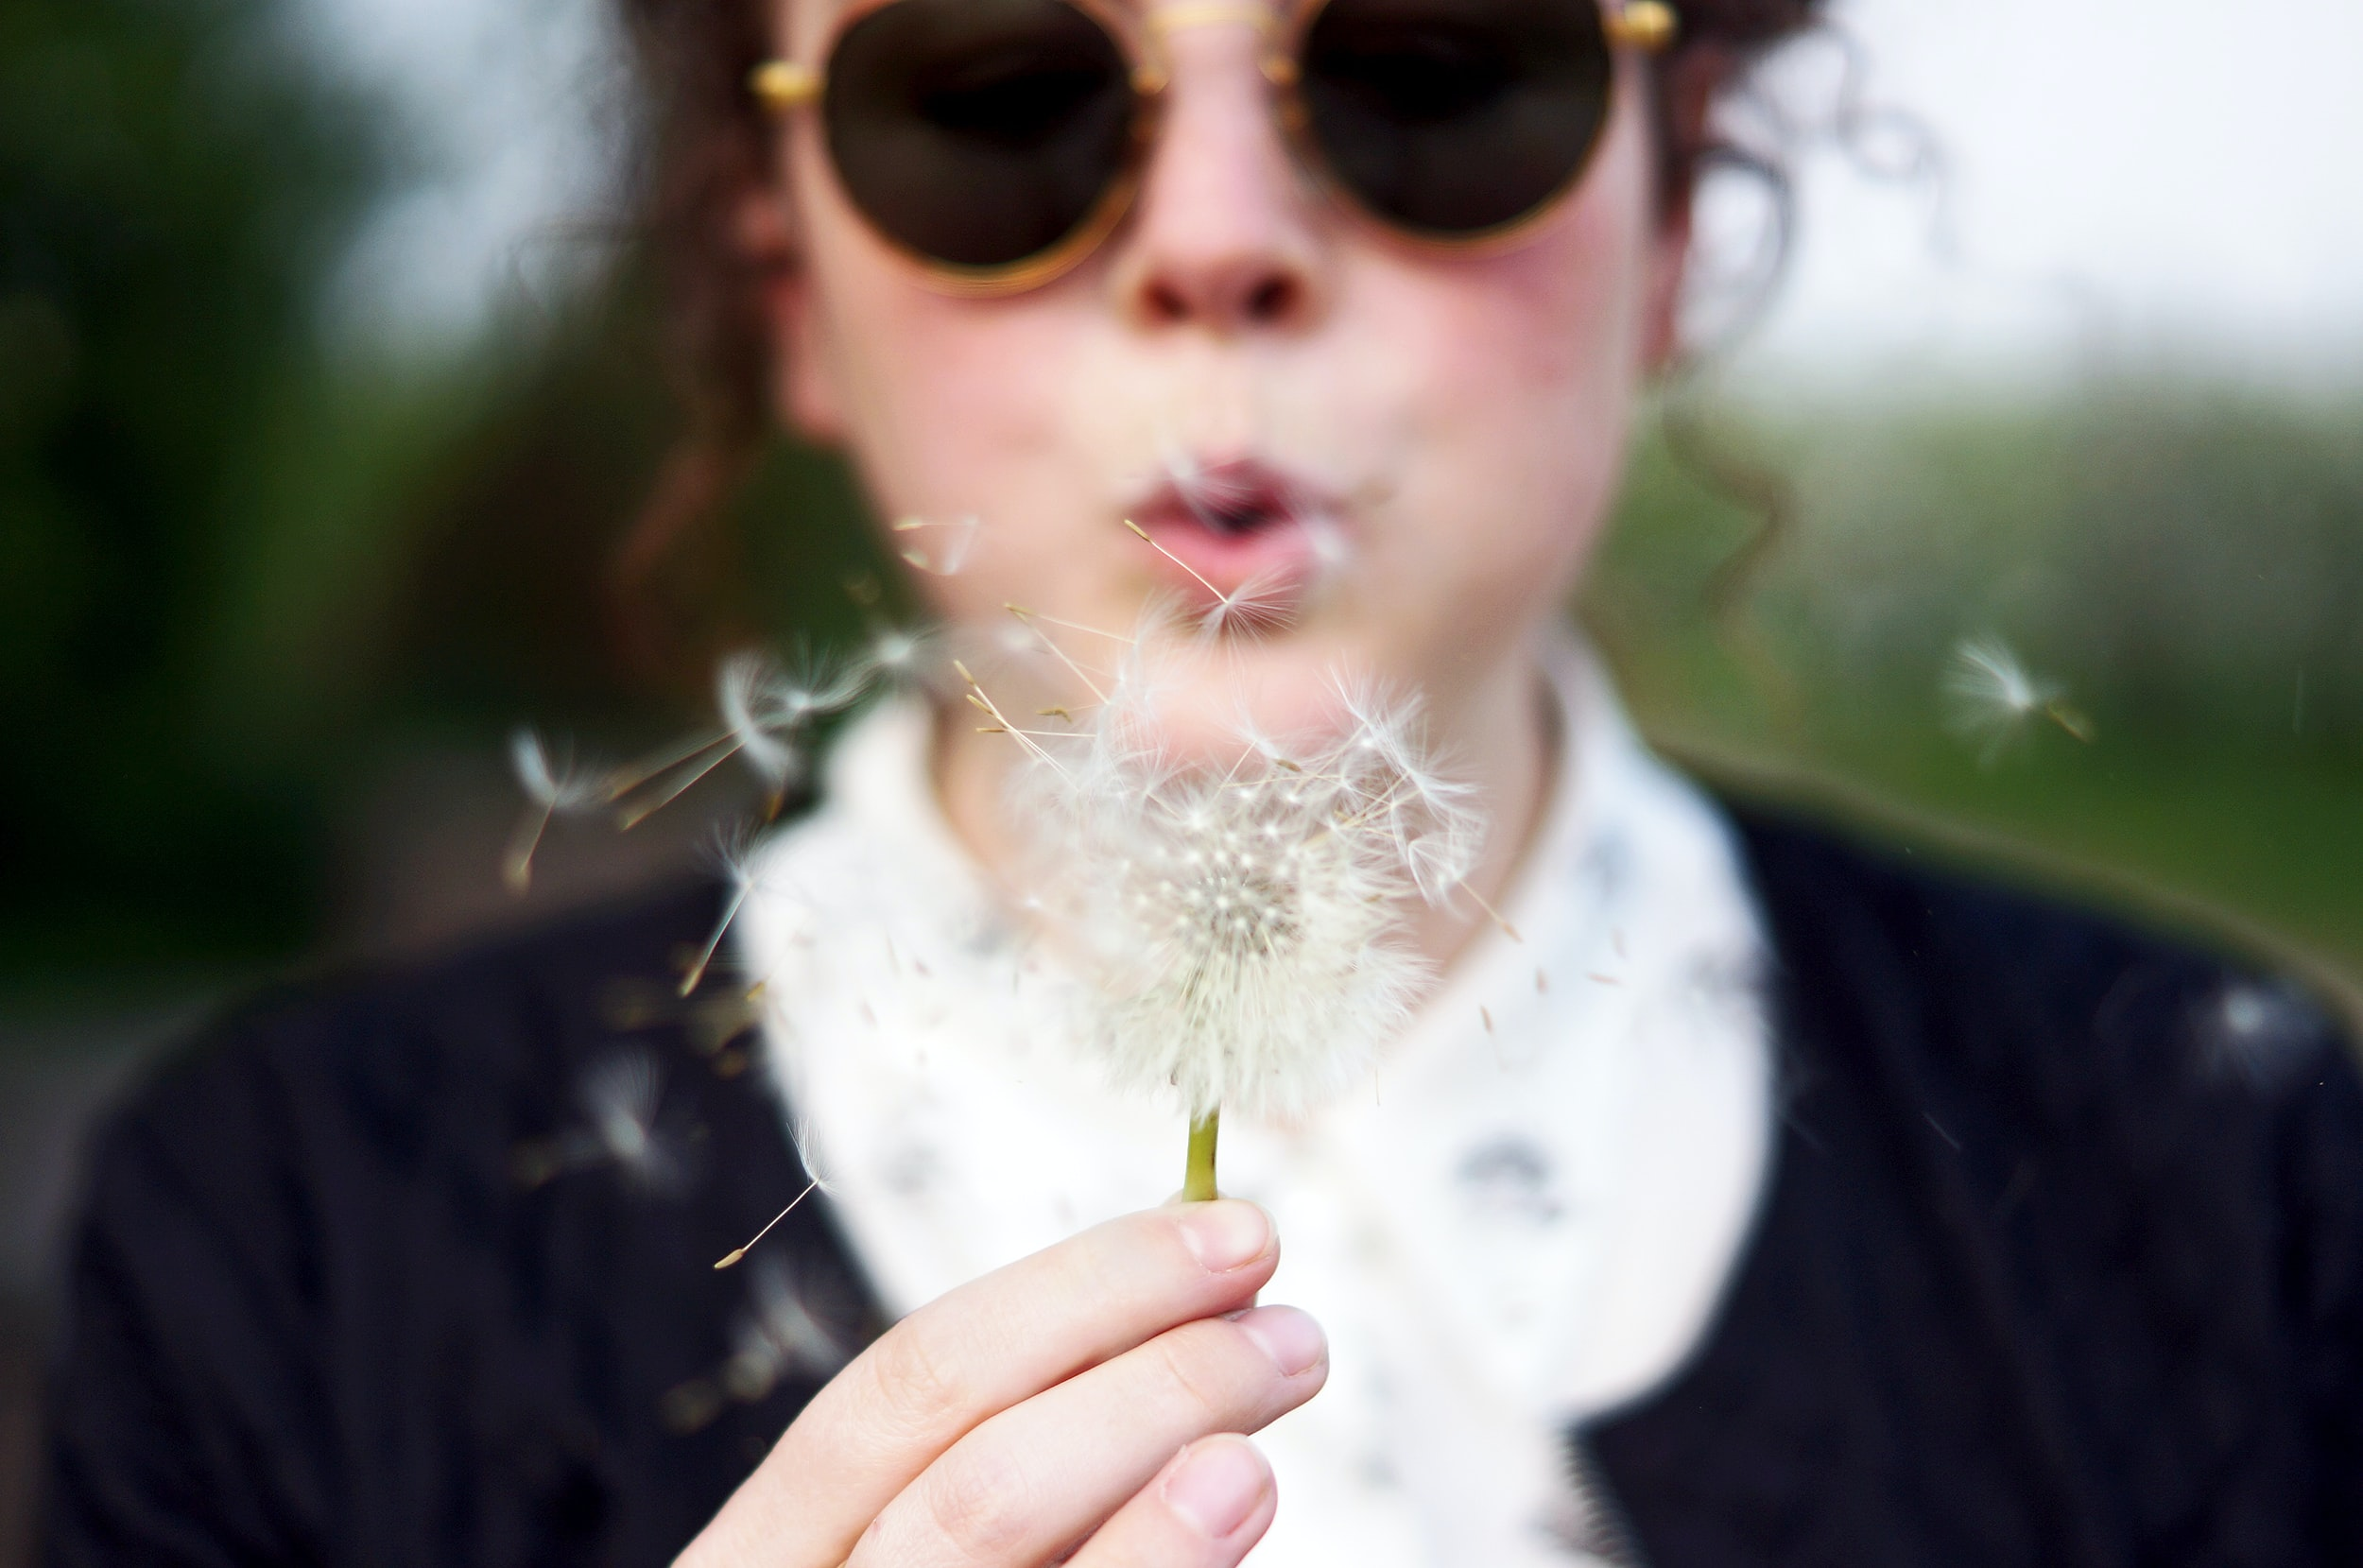 A woman blowing at a dandelion seed head